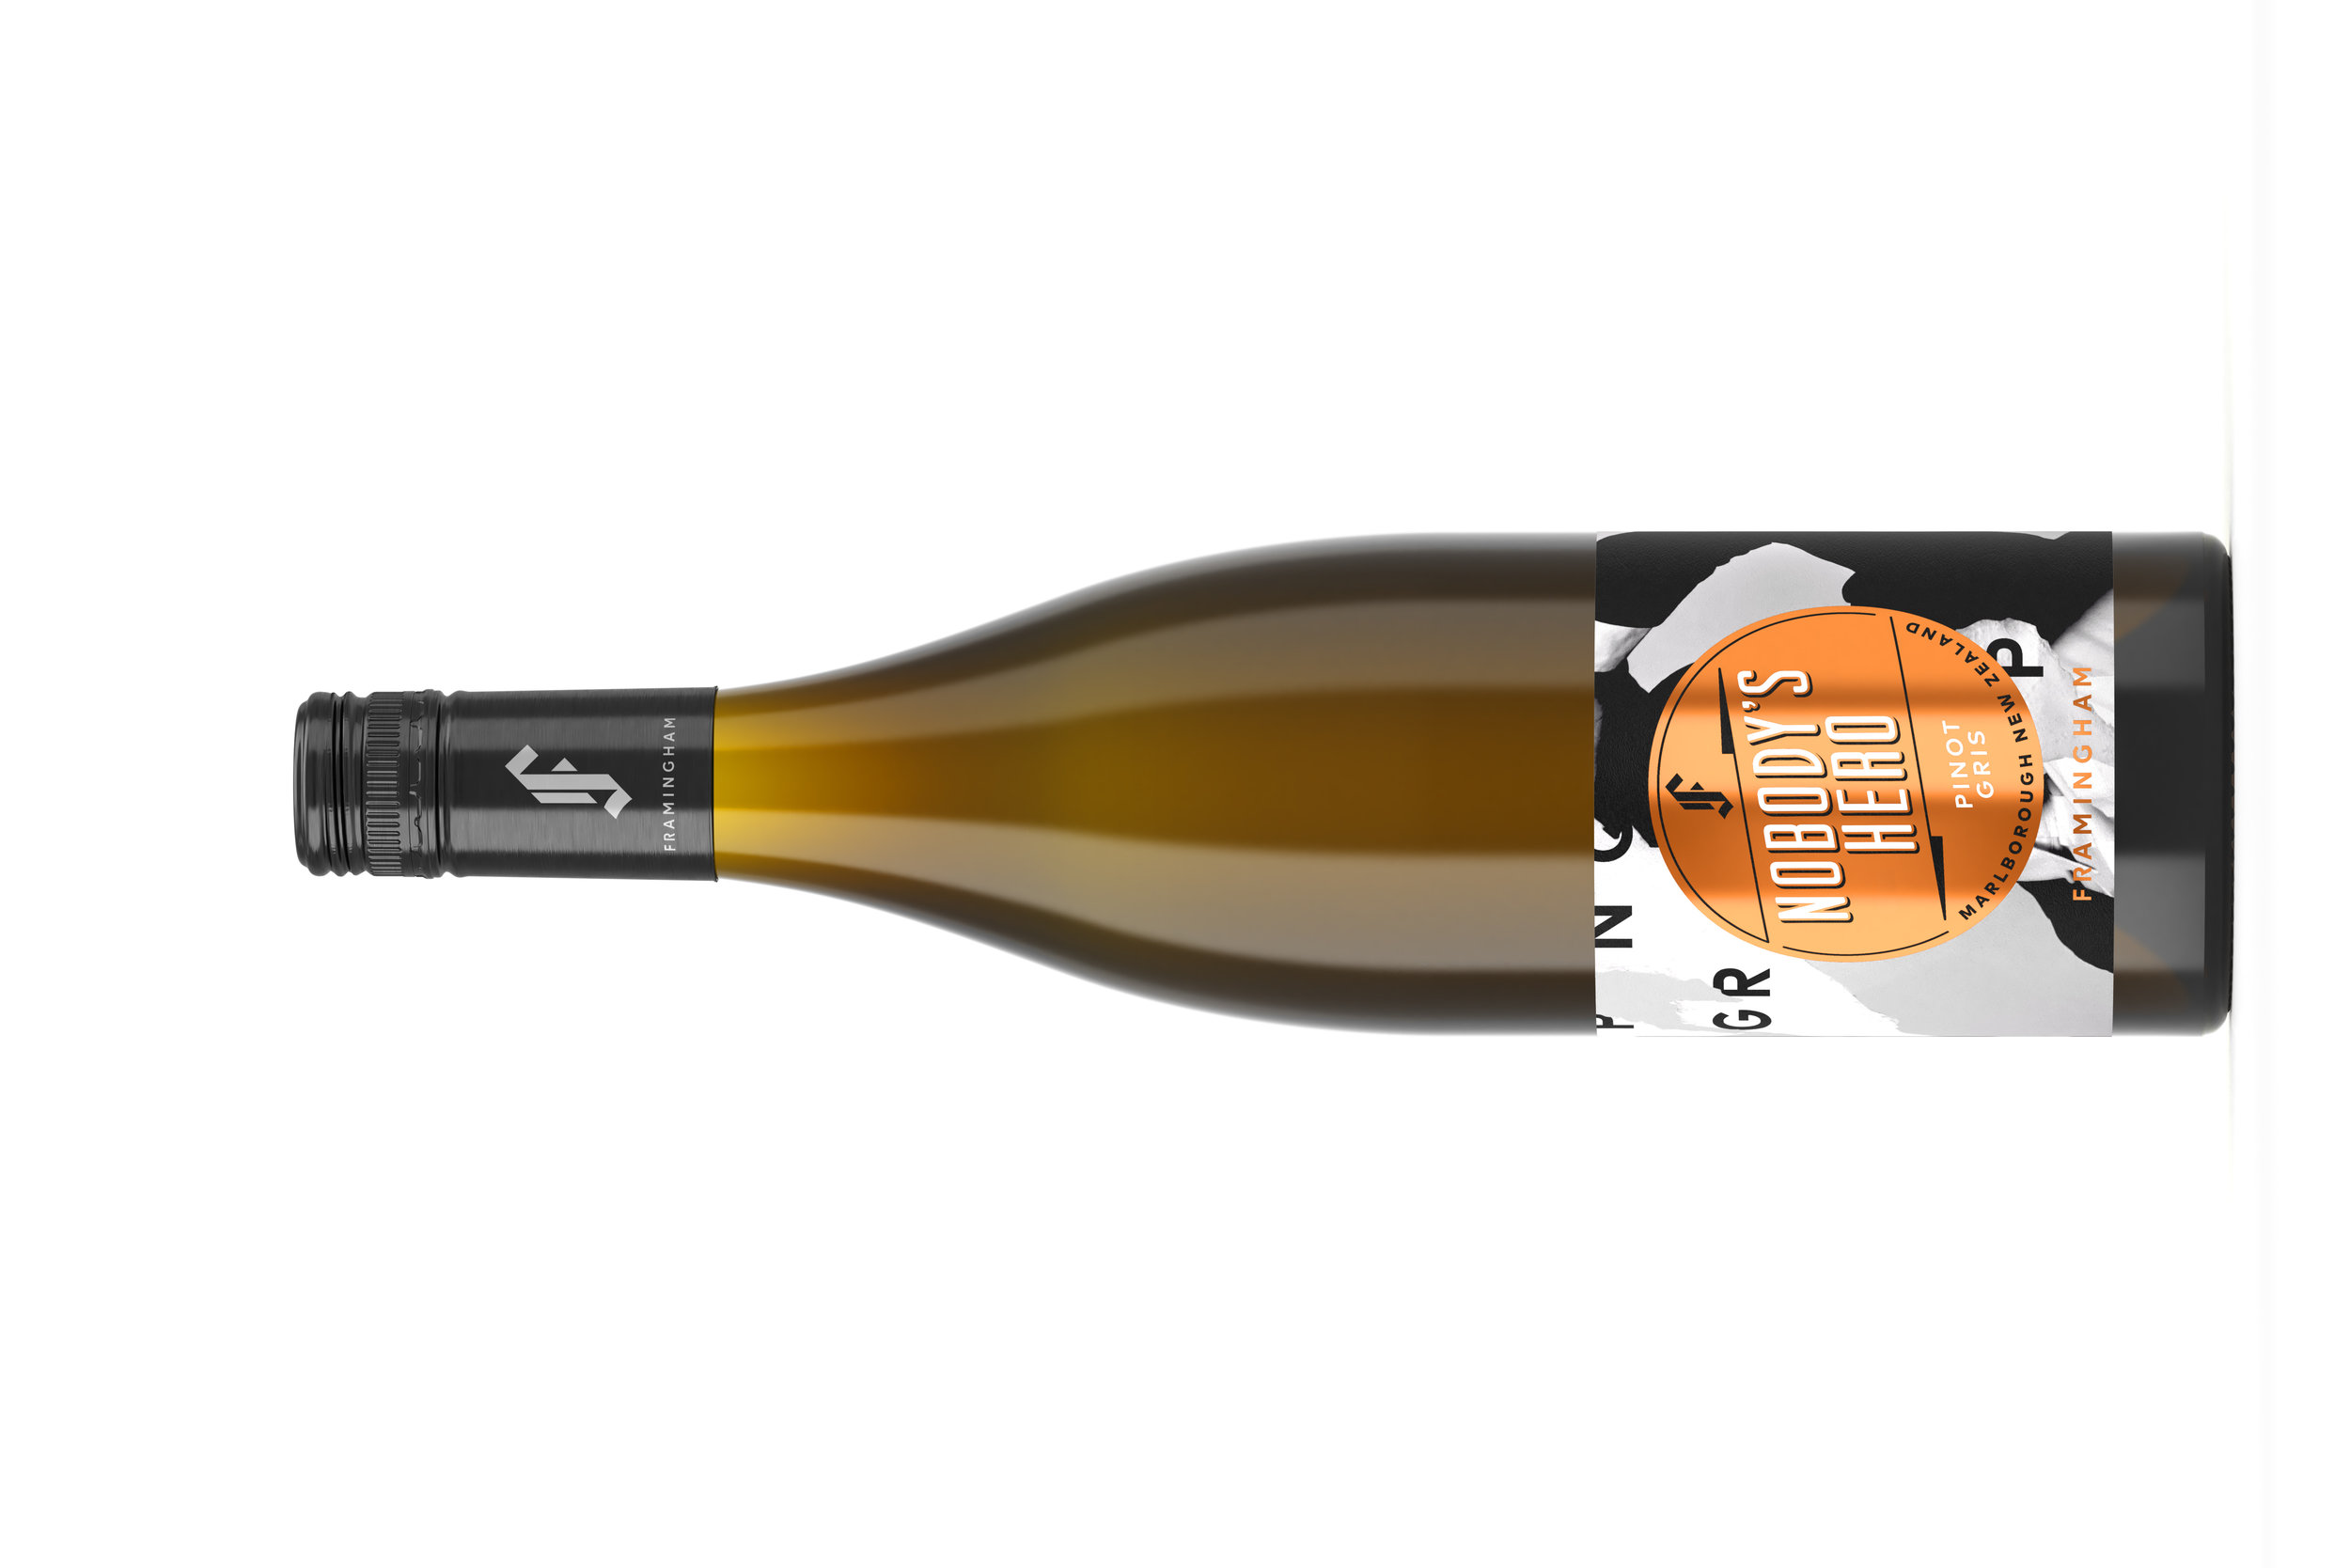 Noby's Hero Pinot Gris | ノーボティズヒーロー ピン グリー  マールボロワイラウヴァレー ¥ 2,950 2018, 750ml, オーガニック   91 Points-WineOrbit   An instant hit, our Pinot Gris kicks off with ripe and rich stone fruit notes, layers of baked apple, and juicy quince harmonies. The outro leaves you with a bold mouth-filling texture and a crowd-pleasing mineral finish.  ワインオービット 91ポイント。このピノ・グリは一瞬で、熟した豊かなストーンフルーツの香り、焼リンゴの層、そしてジューシーなマルメロのハーモニーを届けてくれます。 アウトローは、口いっぱいに感じるしっかりとしたテクスチャーと、誰もが喜ぶようなミネラリーなフィニッシュ。チキン、ポーク、ベジタリアン料理、チーズをどうぞ。  FOOD MATCH Enjoy with chicken, pork, vegetarian dishes and cheese.